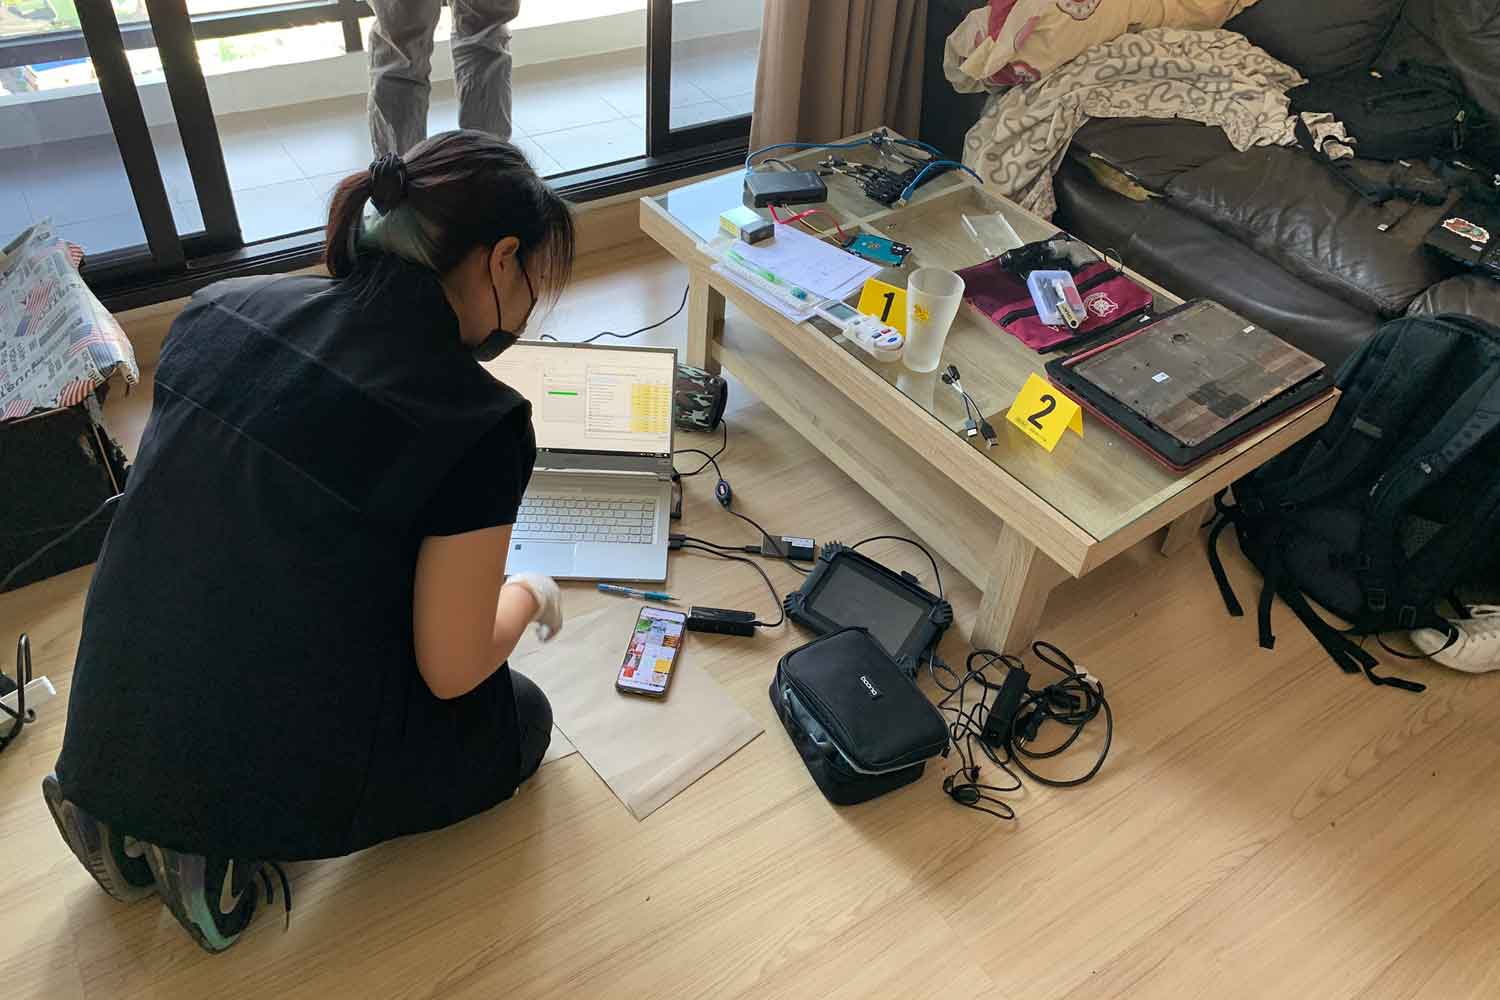 A Department of Special Investigation official examines the contents of a laptop found in a room of an apartment in Khlong San area, Bangkok. The Israeli tenant was arrested and charged with possession of child pornography and child sex ause. (Photo supplied)